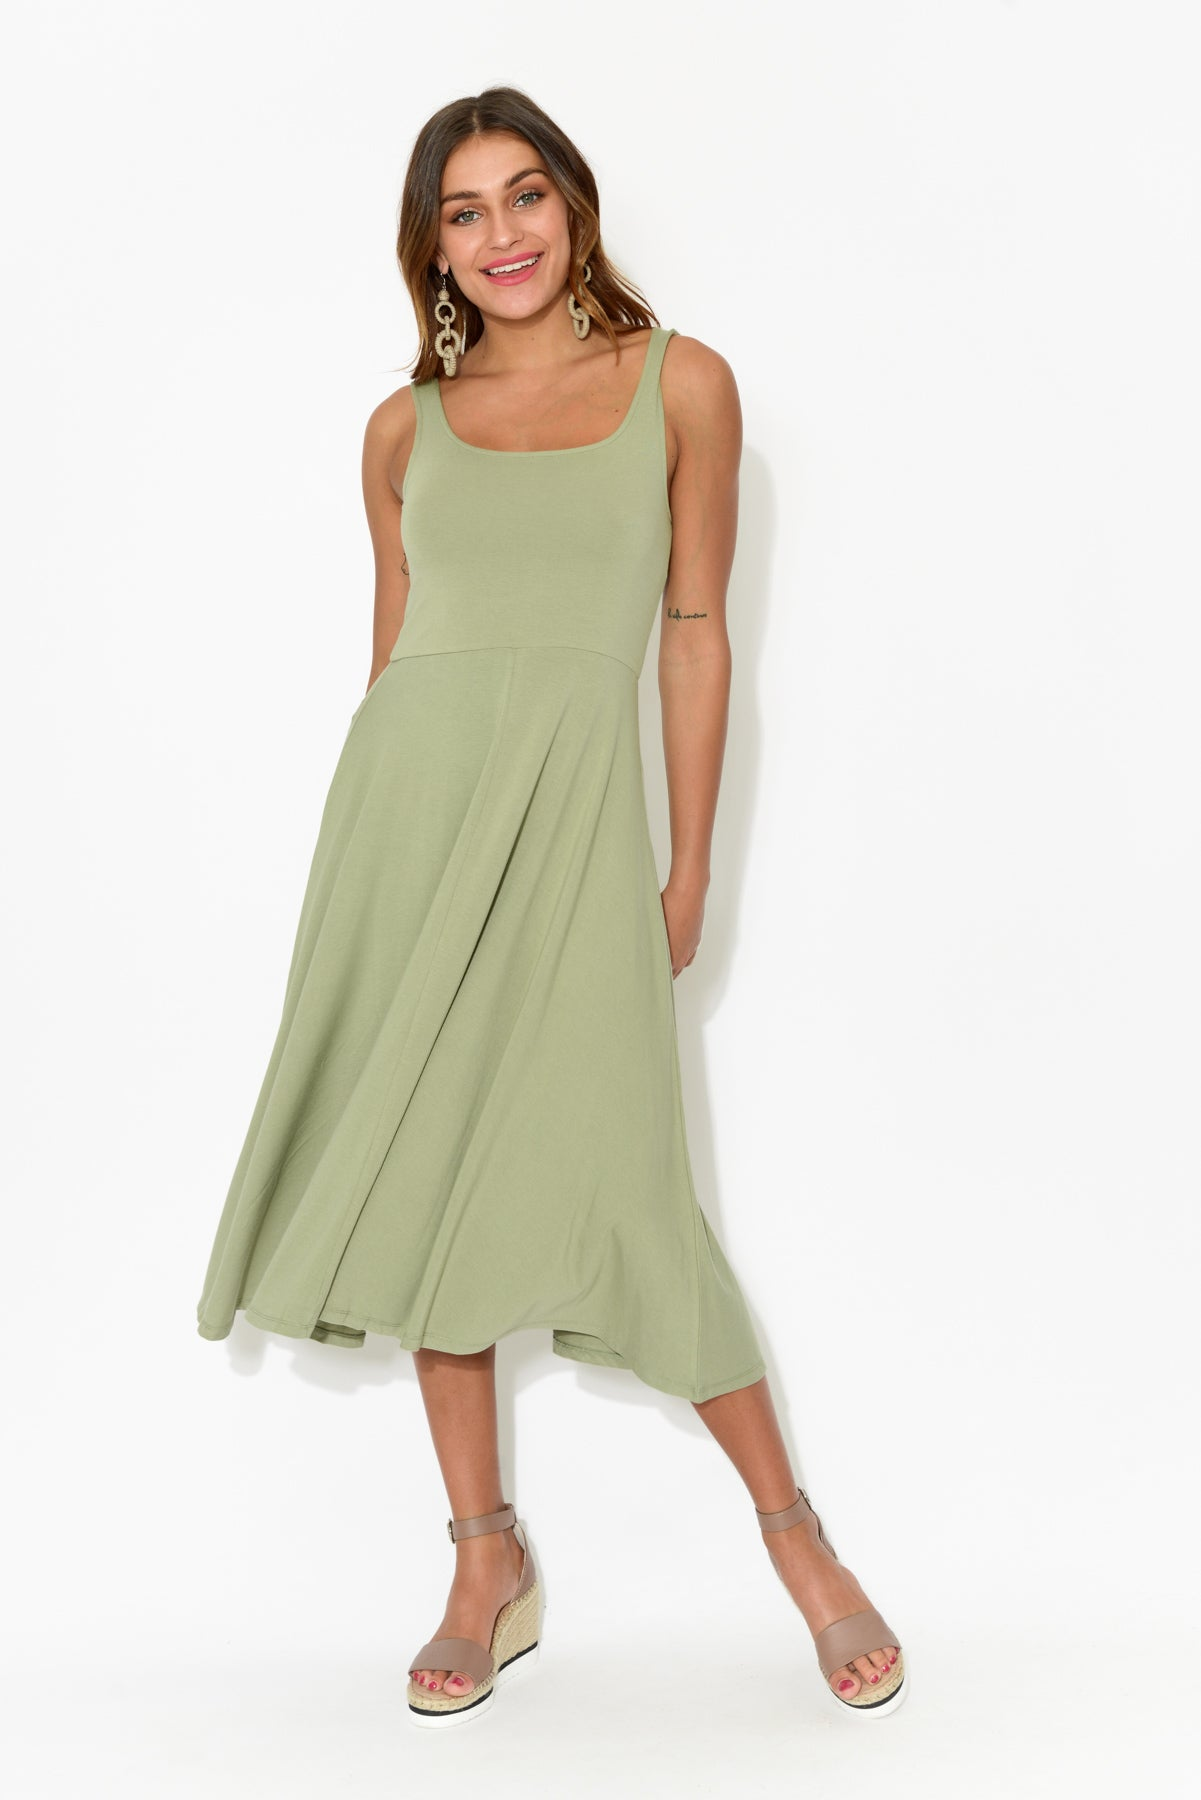 Melanie Sage Bamboo Dress